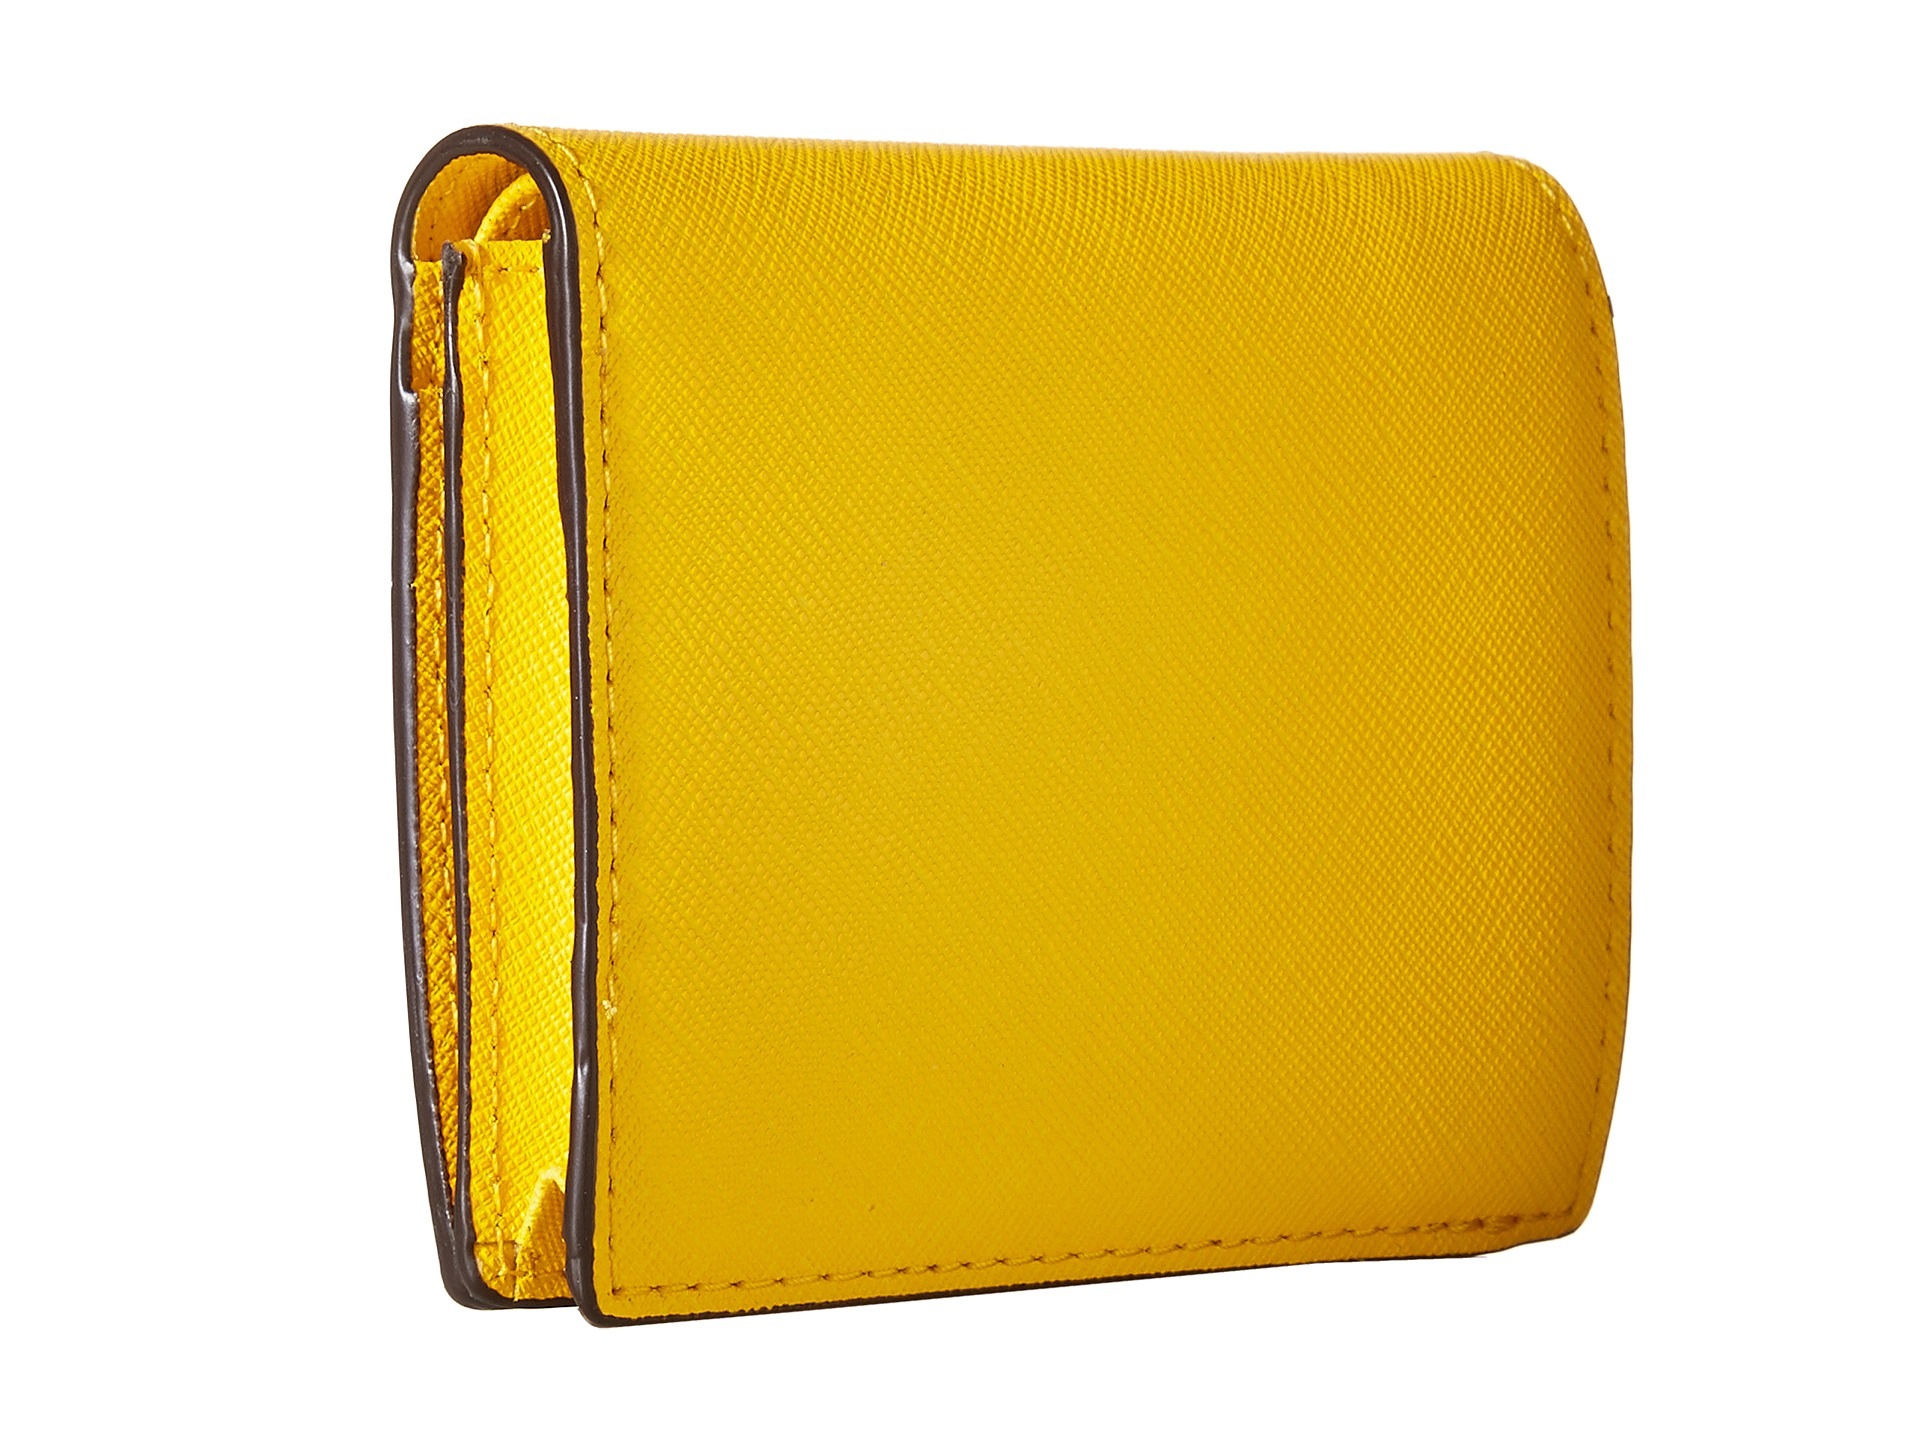 72d30b23ad9cd Lyst - MICHAEL Michael Kors Jet Set Travel Flap Card Holder in Yellow